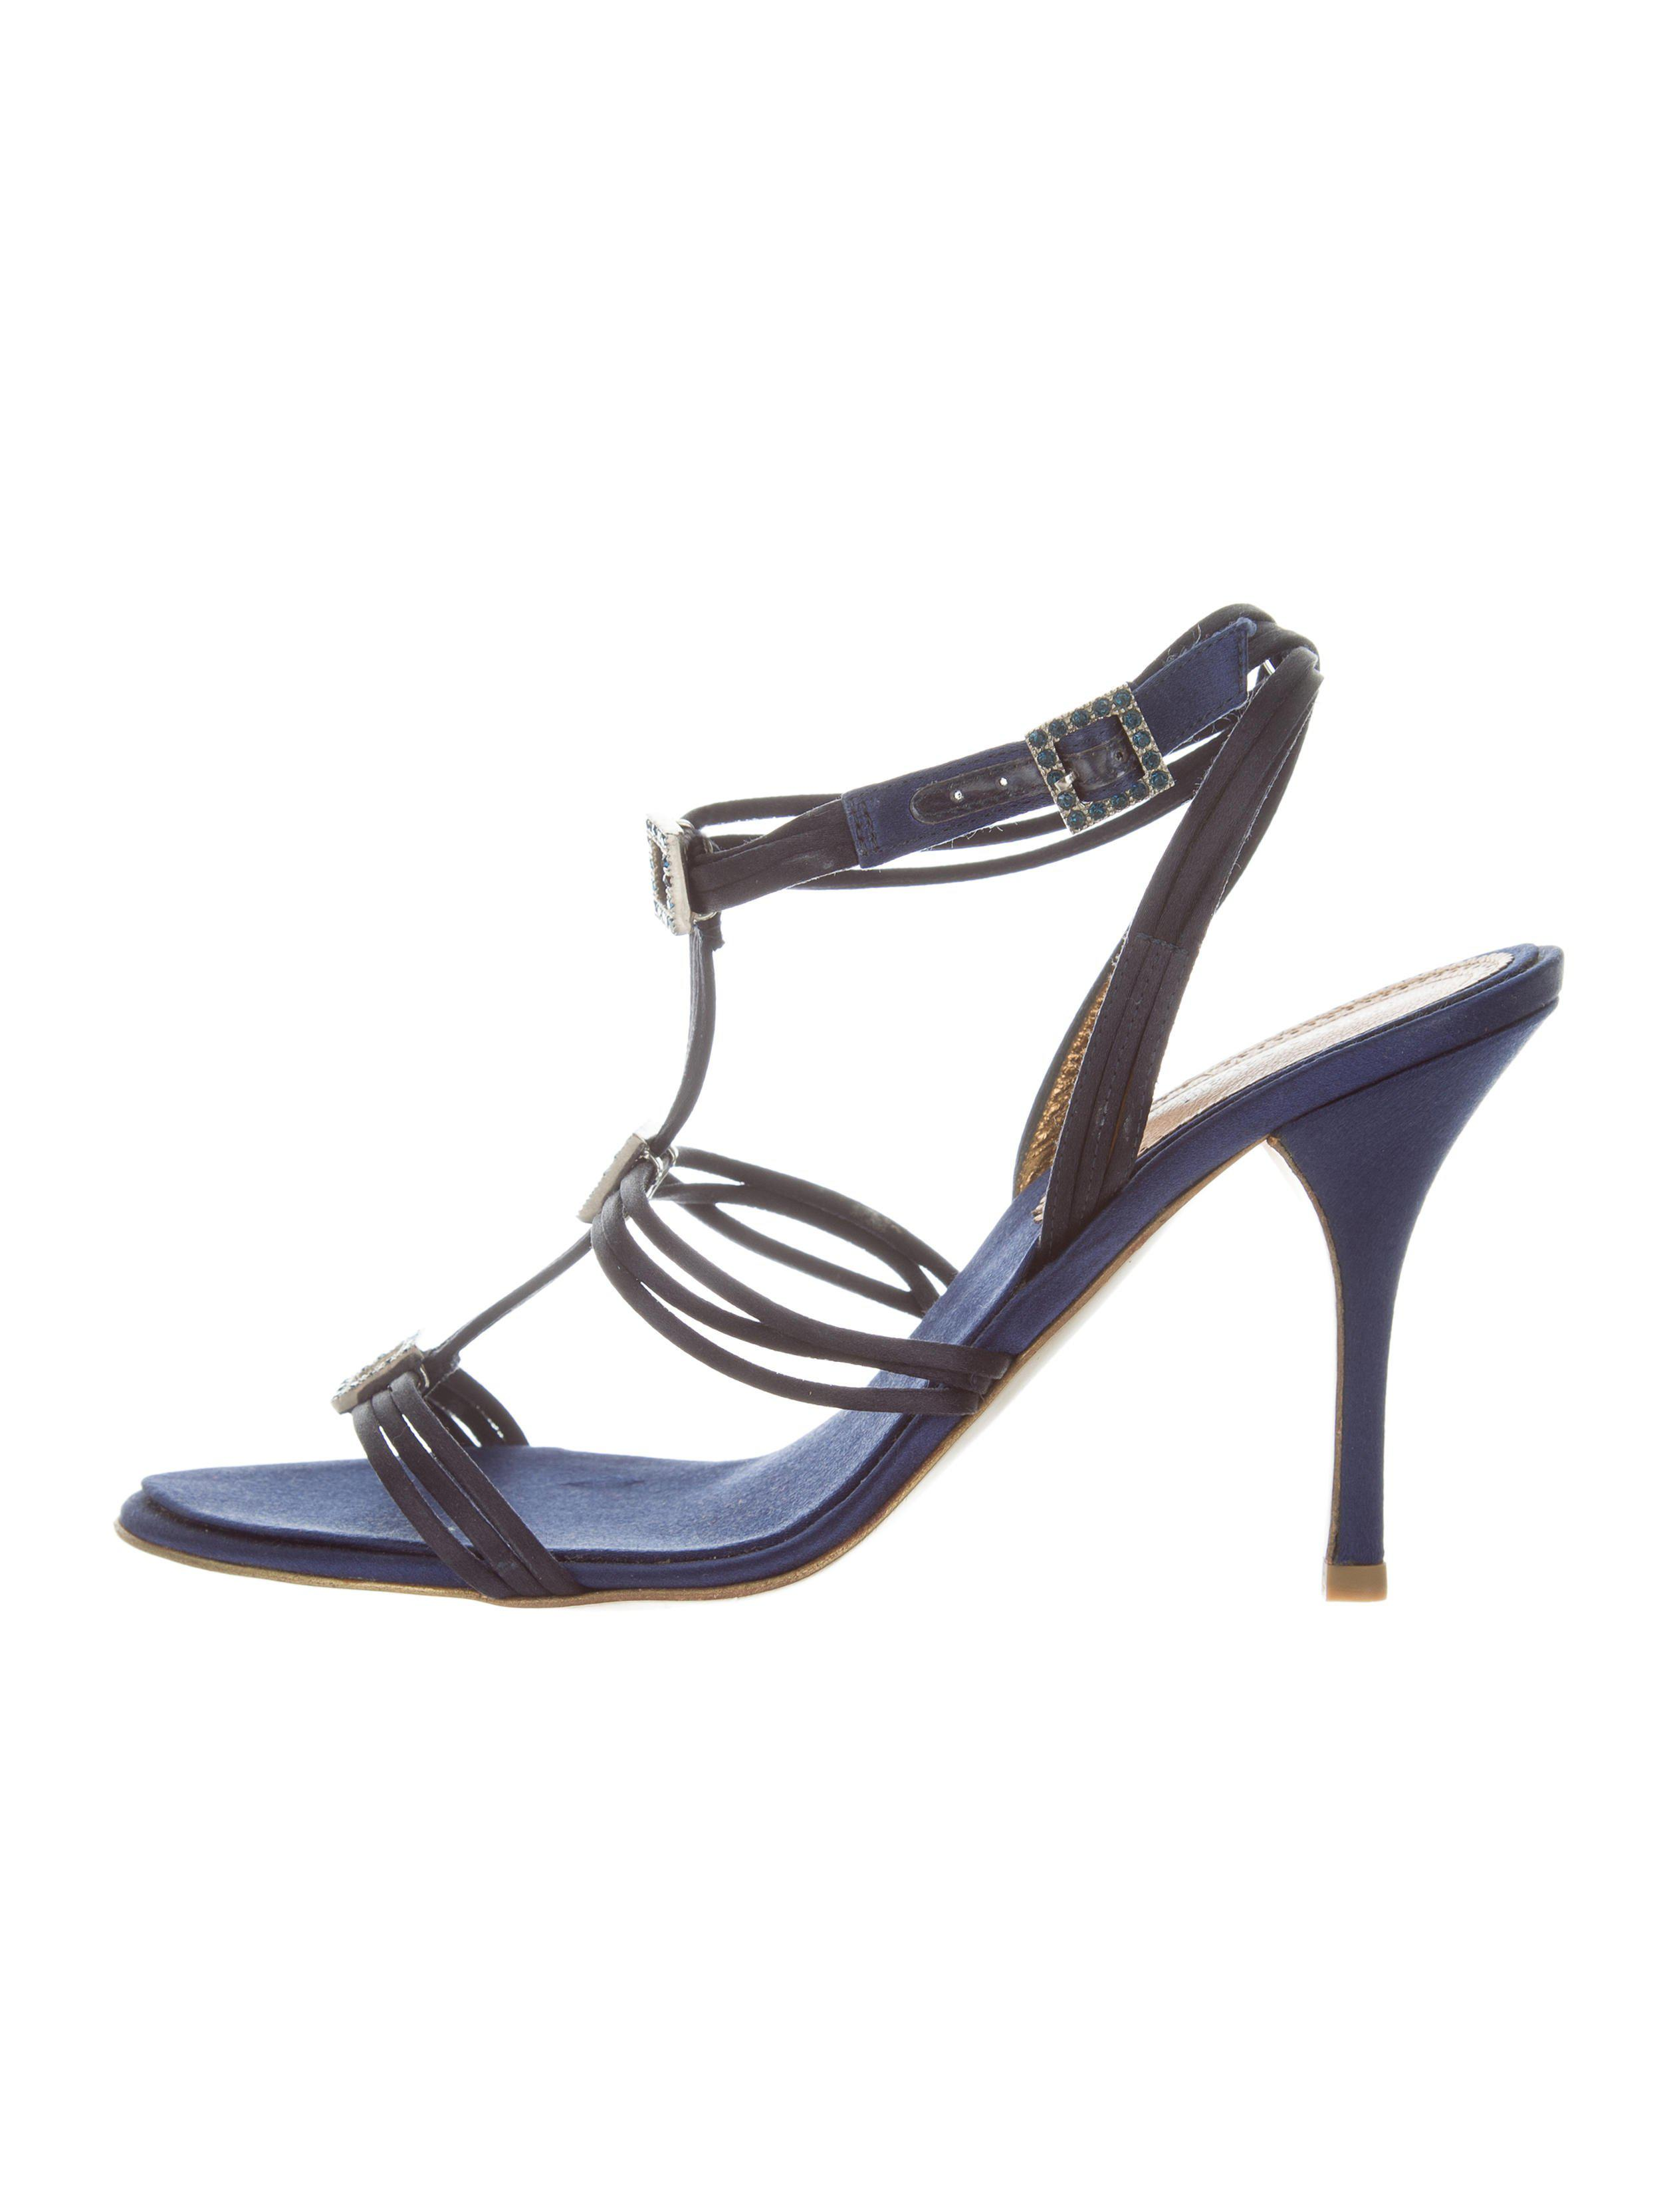 outlet excellent clearance visa payment Roberto Cavalli Satin Multistrap Sandals clearance fashionable professional for sale outlet locations sale online Ek2r7P